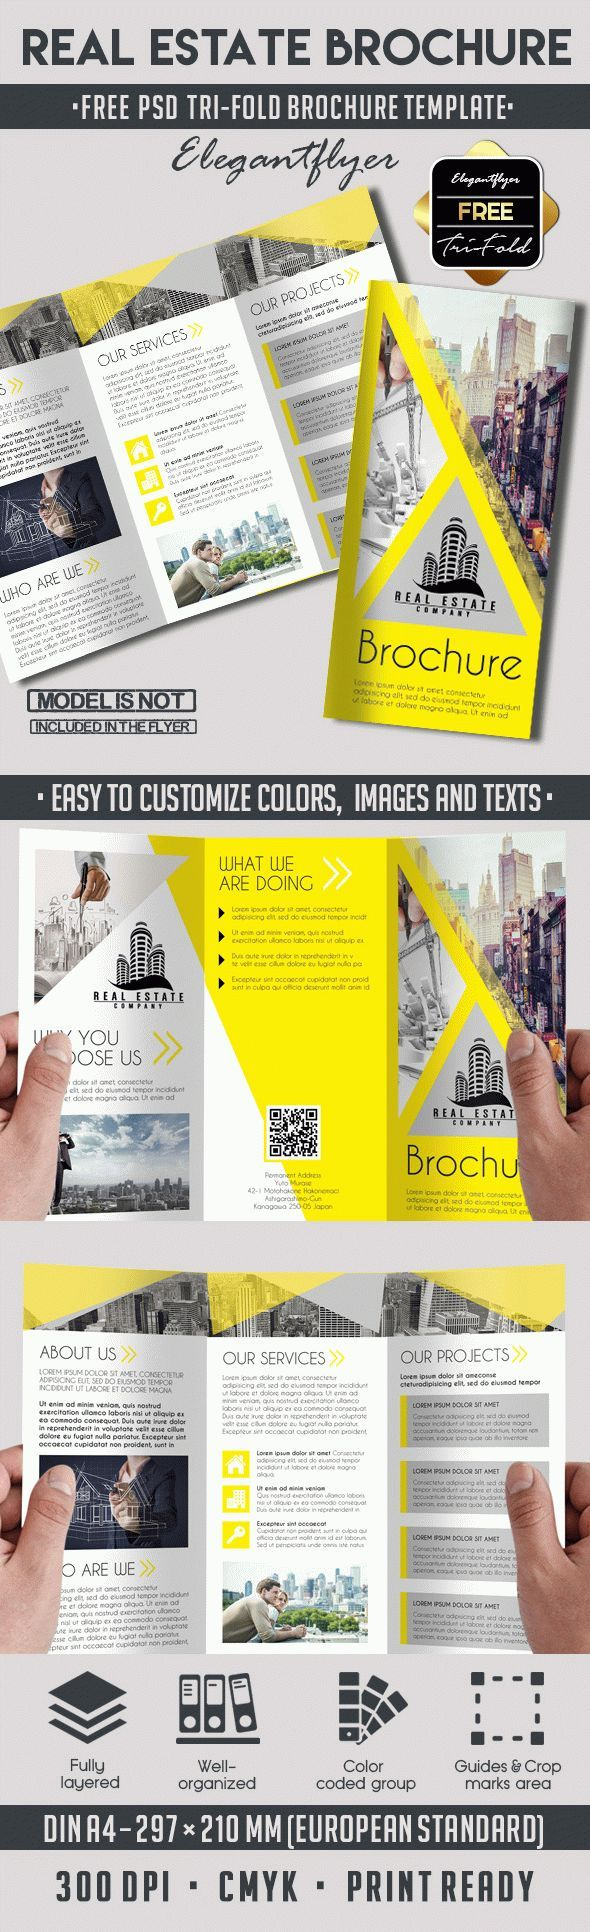 Best Free Brochure Templates Images On Pinterest Brochures - Advertising brochure templates free